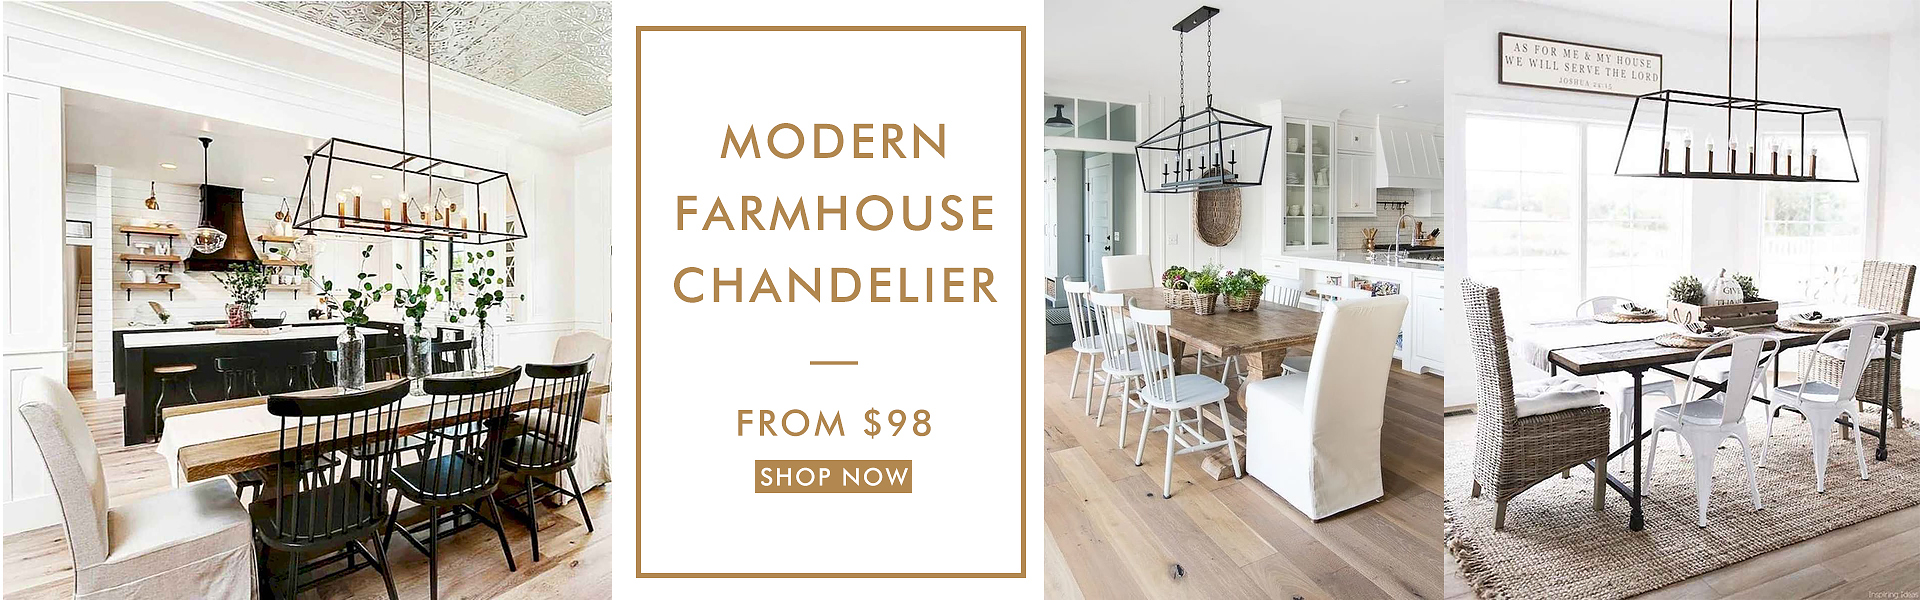 Modern Farmhouse Chandelier from $98